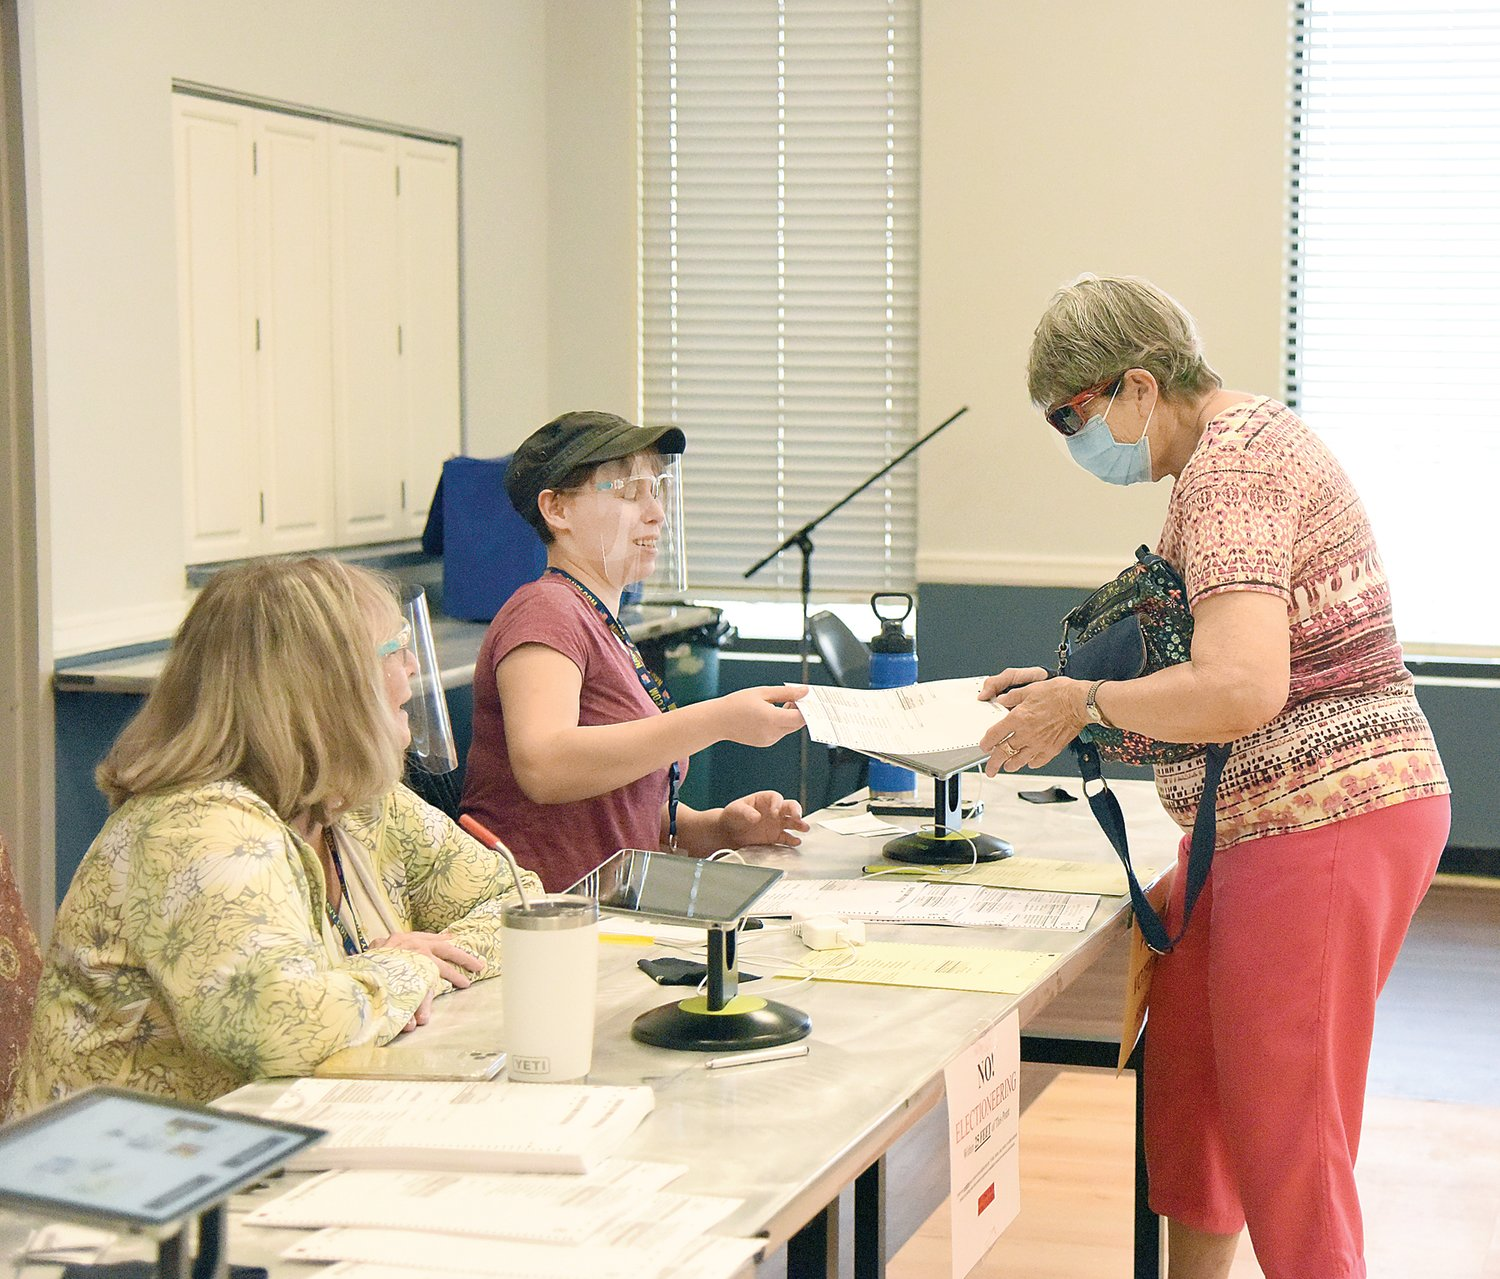 Mary Louise Dove receives her ballot from Pettis County Election Judge Allison McIntyre on Tuesday for Ward 4 at the United Methodist Church Celebration Center. At 10:51 a.m. 222 people had voted in Ward 4.